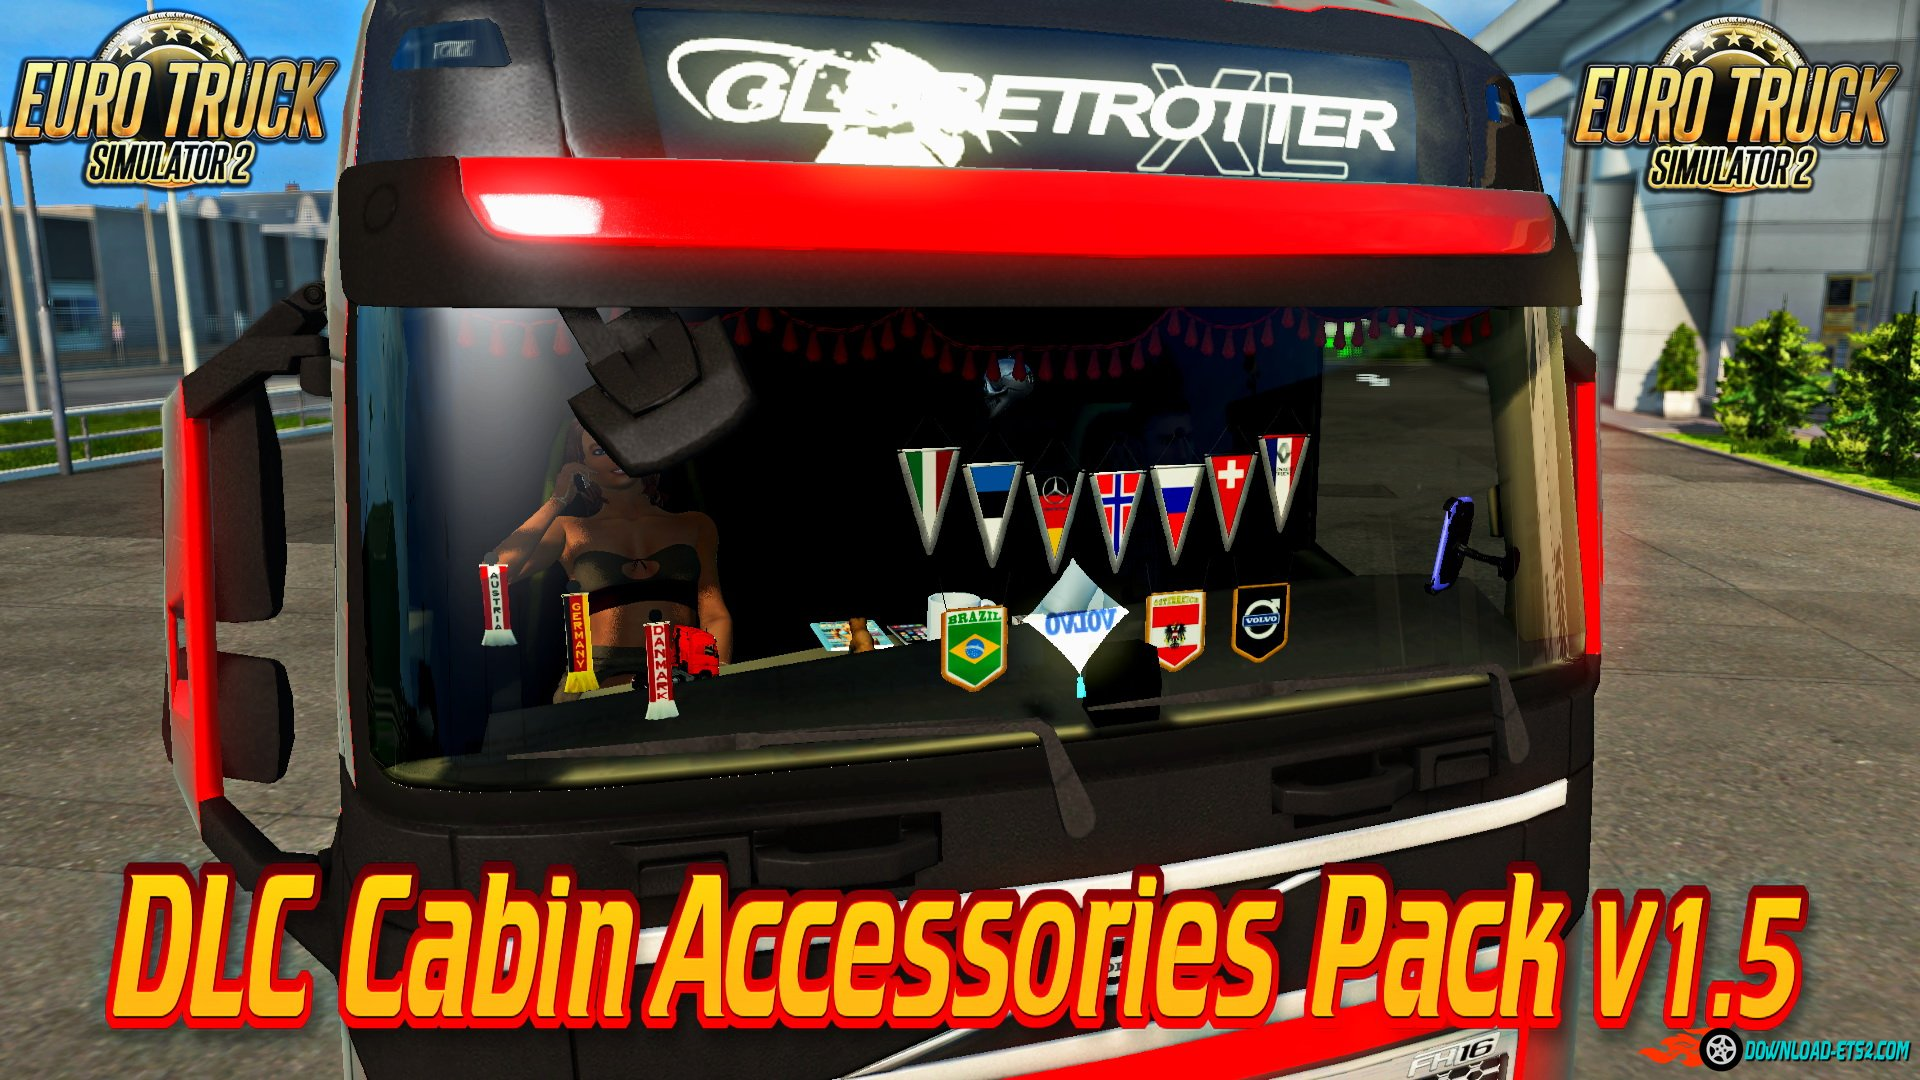 DLC Cabin Accessories Pack v1.5